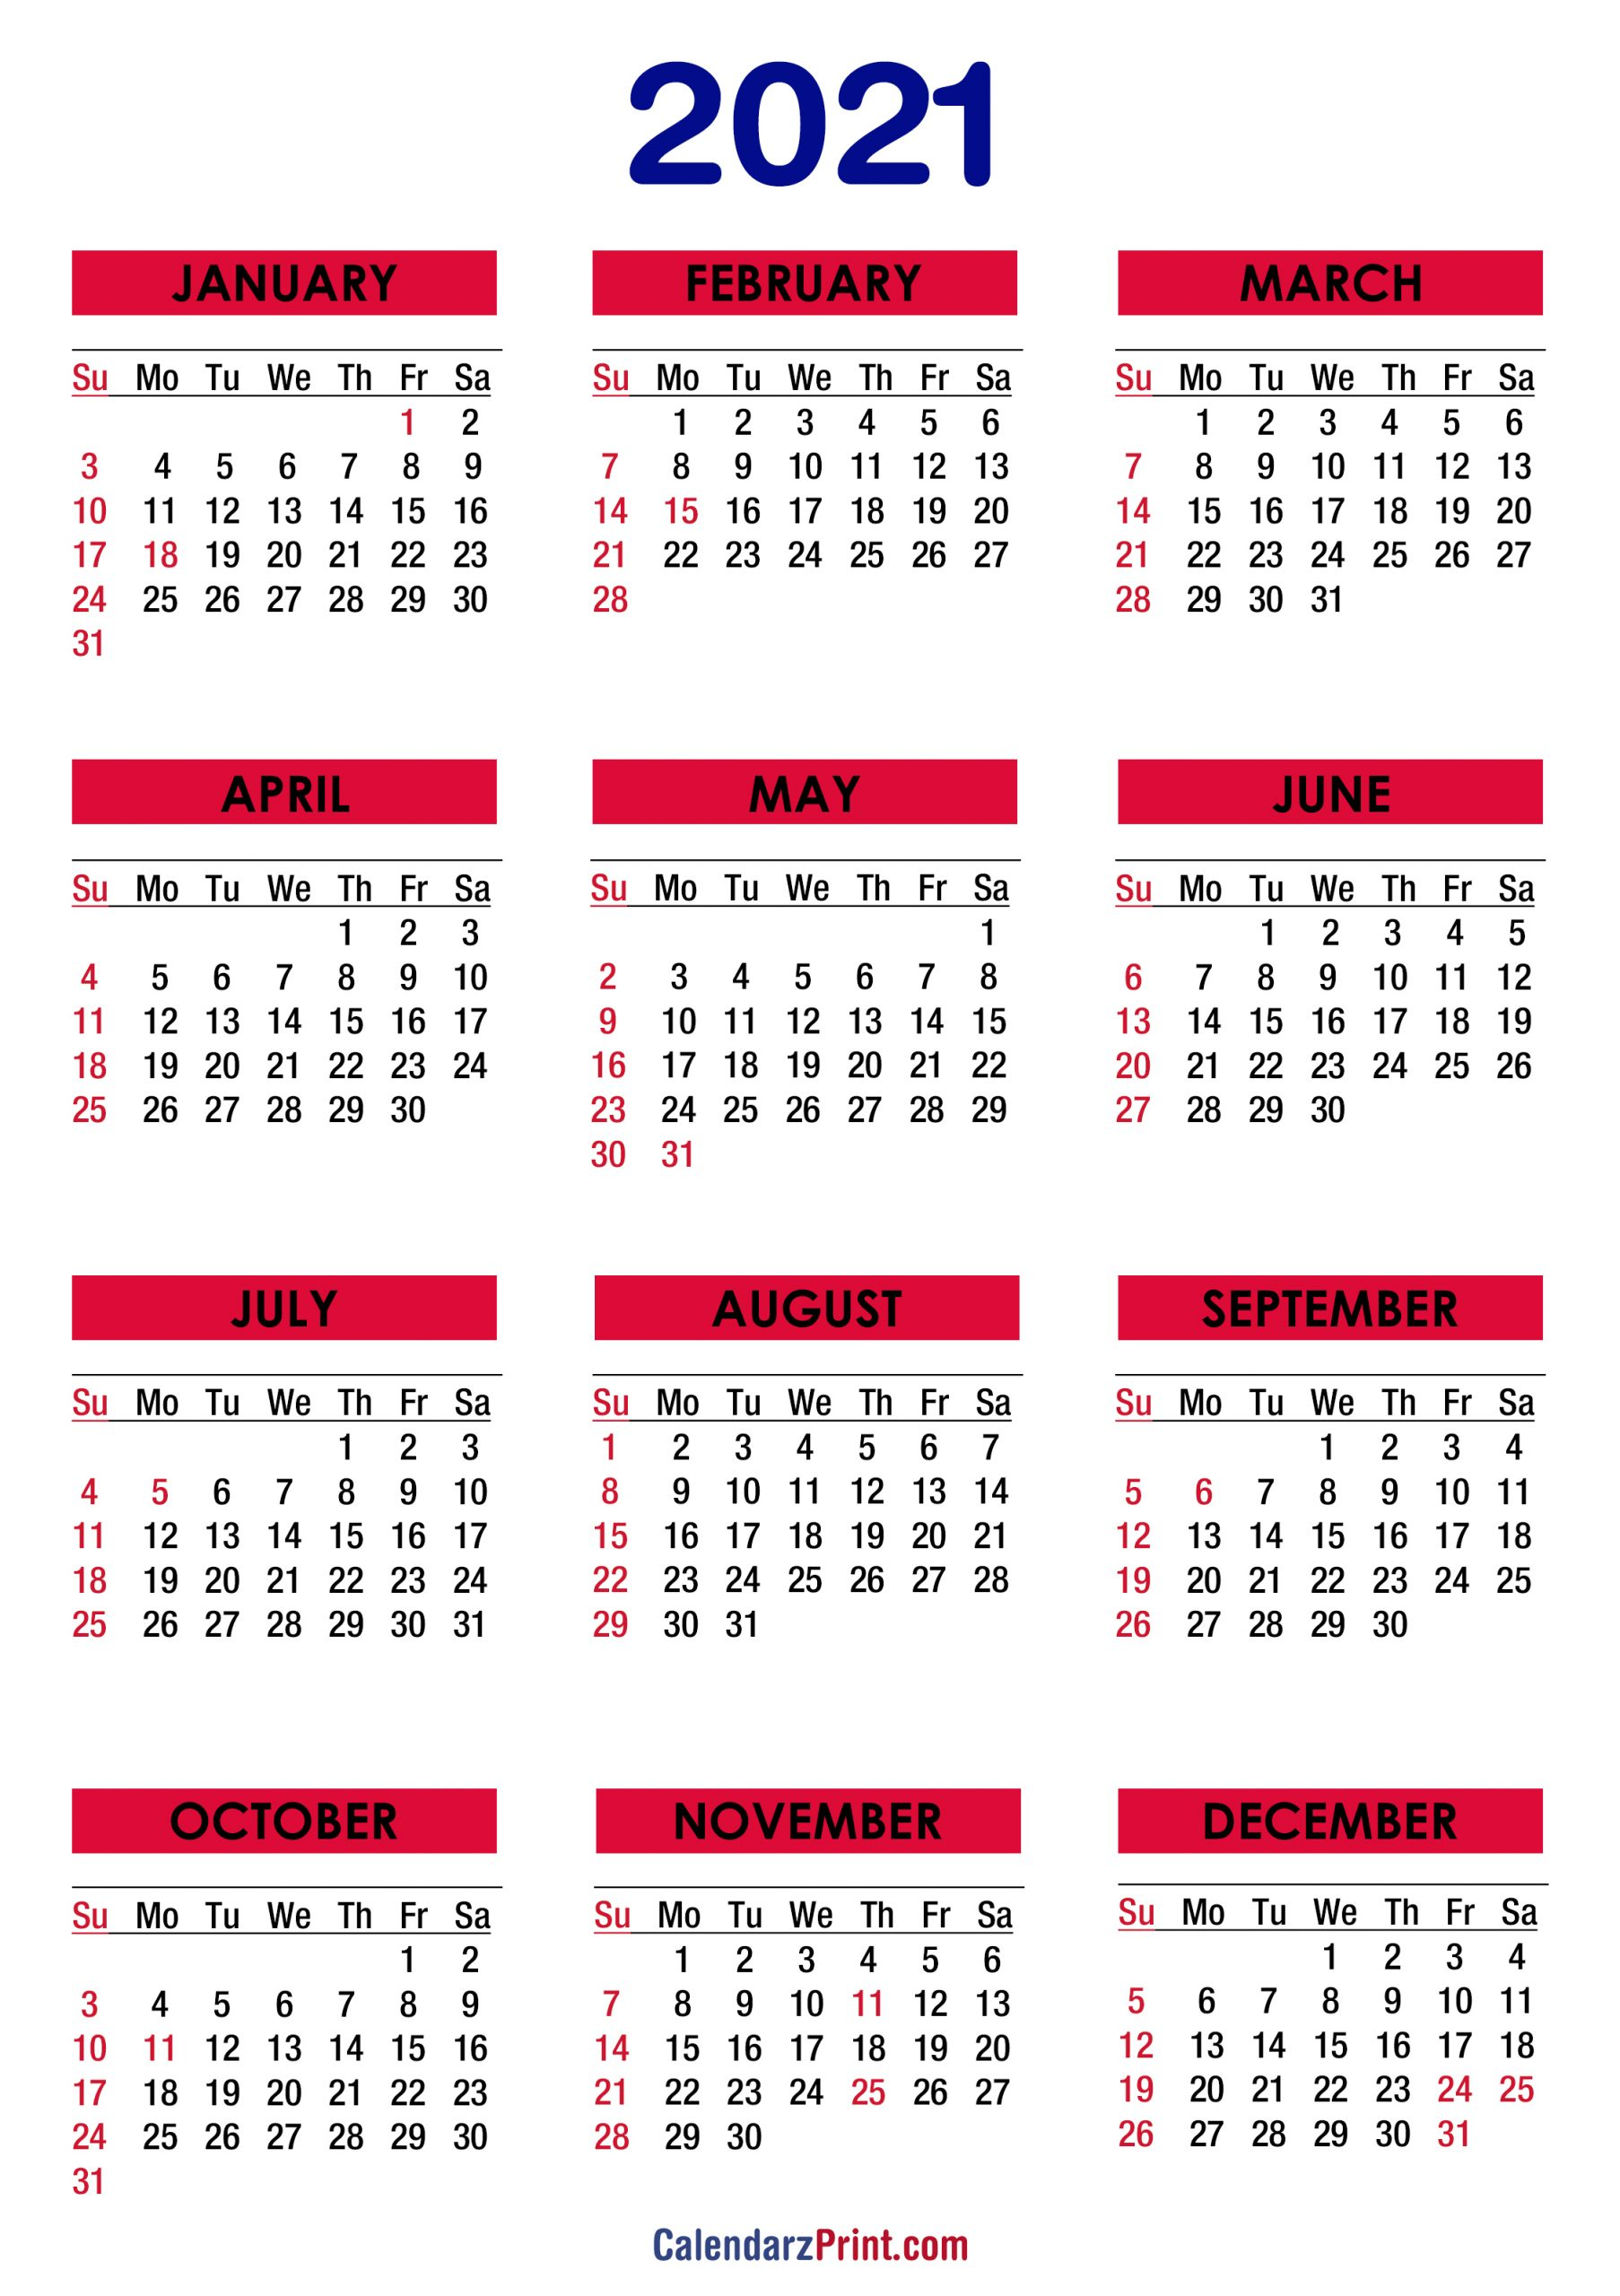 2021 Calendar With Holidays Printable Free Colorful 3